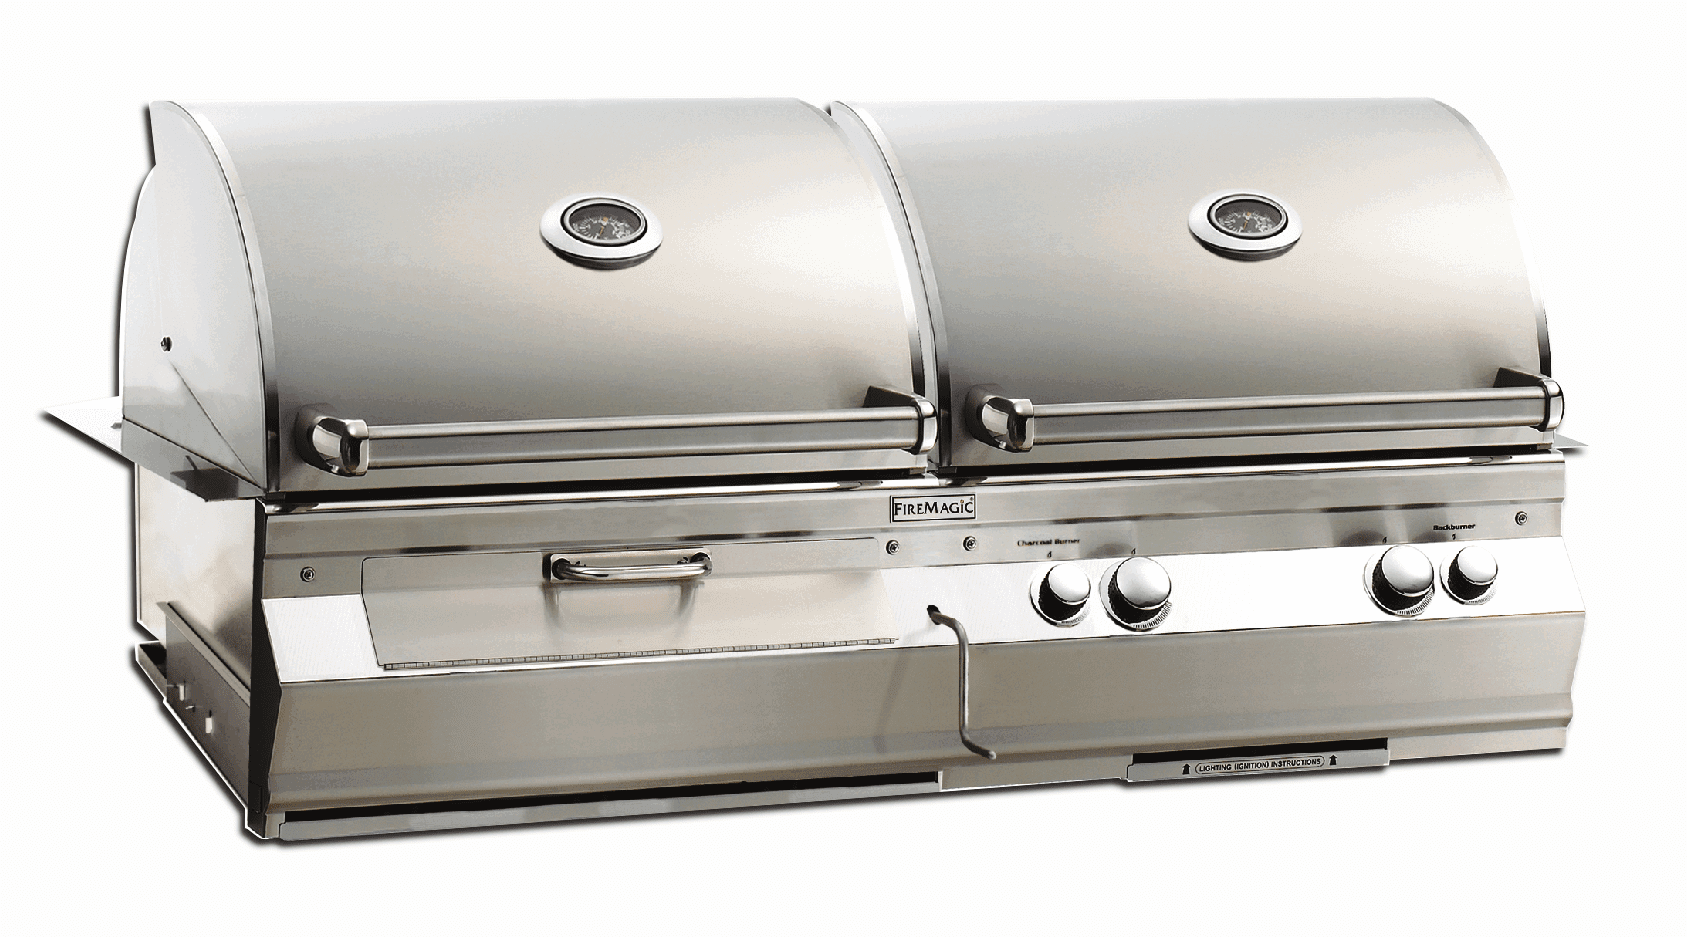 Fire Magic Dual Hood Charcoal and Gas grill built in A830i-1E1N-CB